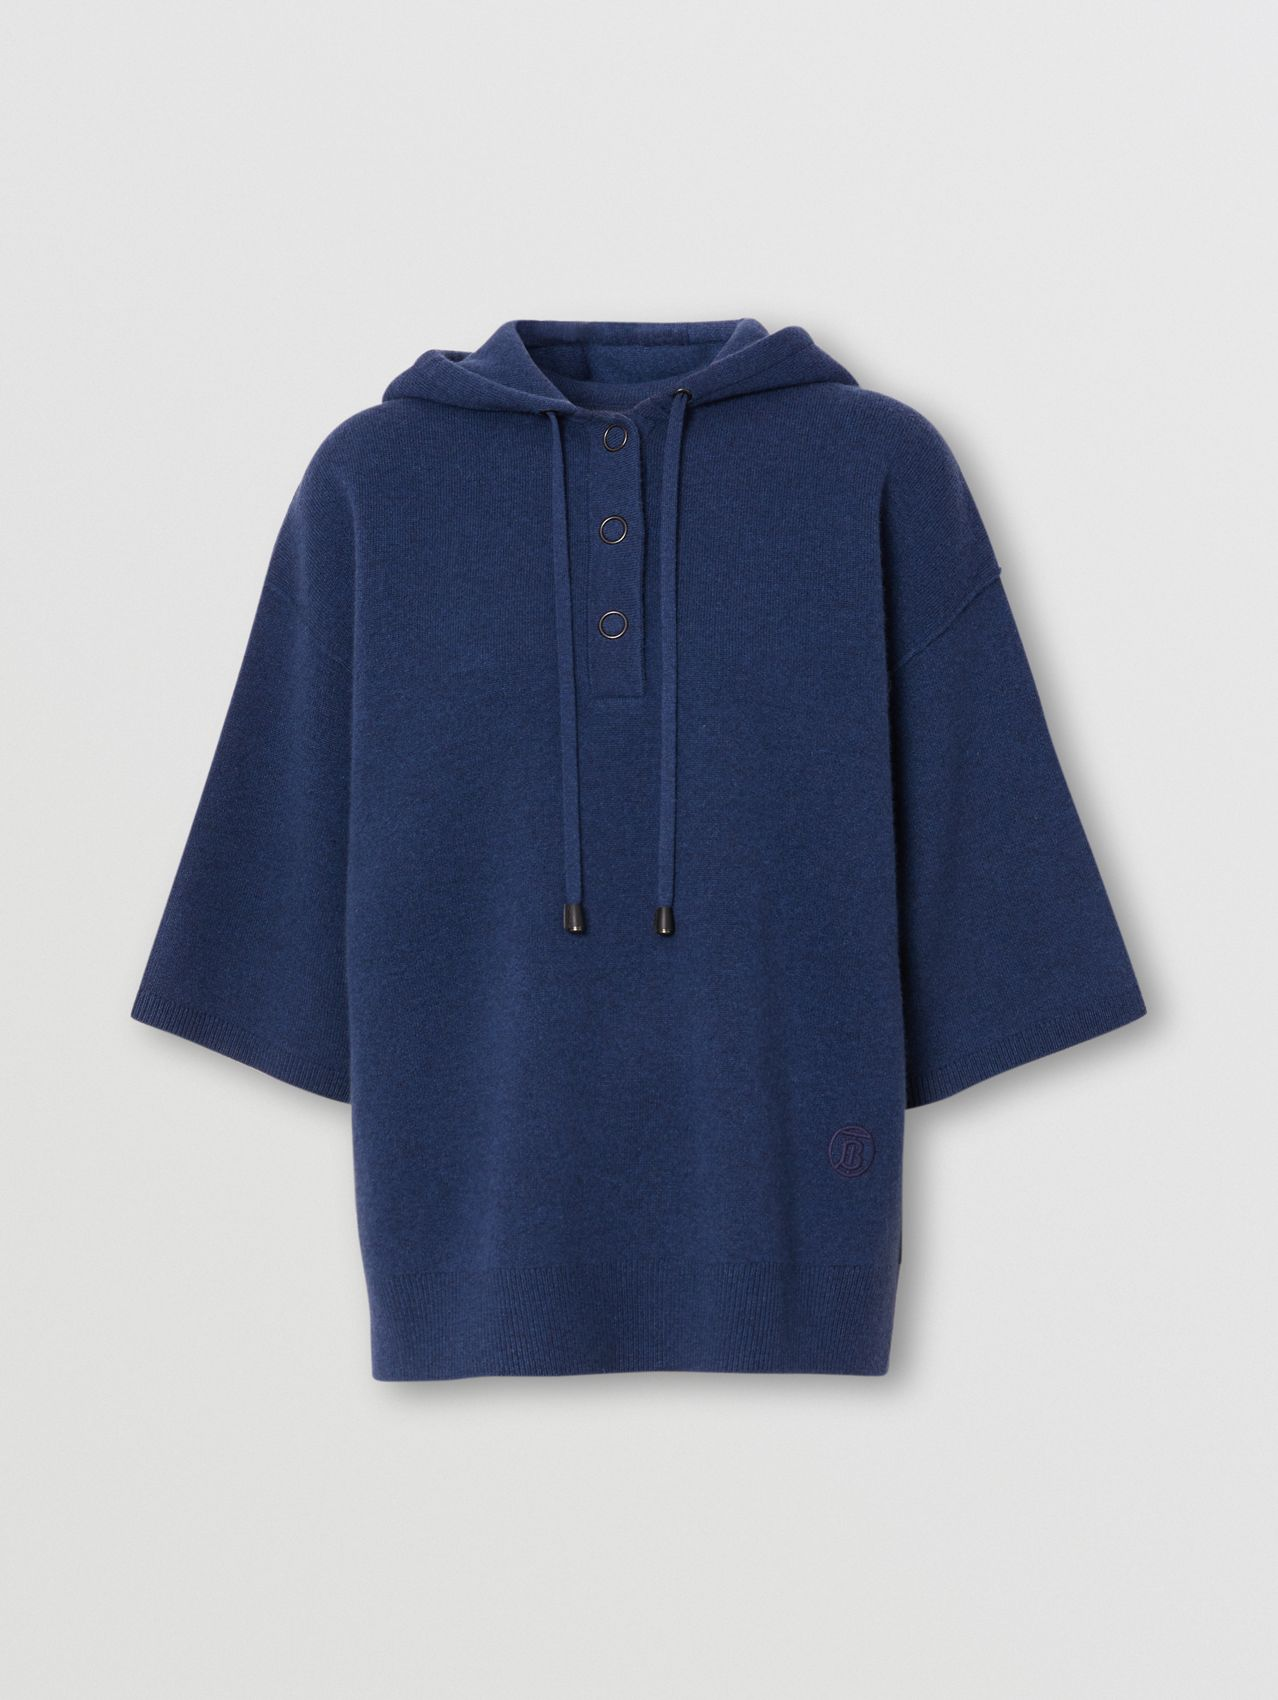 Short-sleeve Cashmere Blend Oversized Hooded Top in Ink Blue